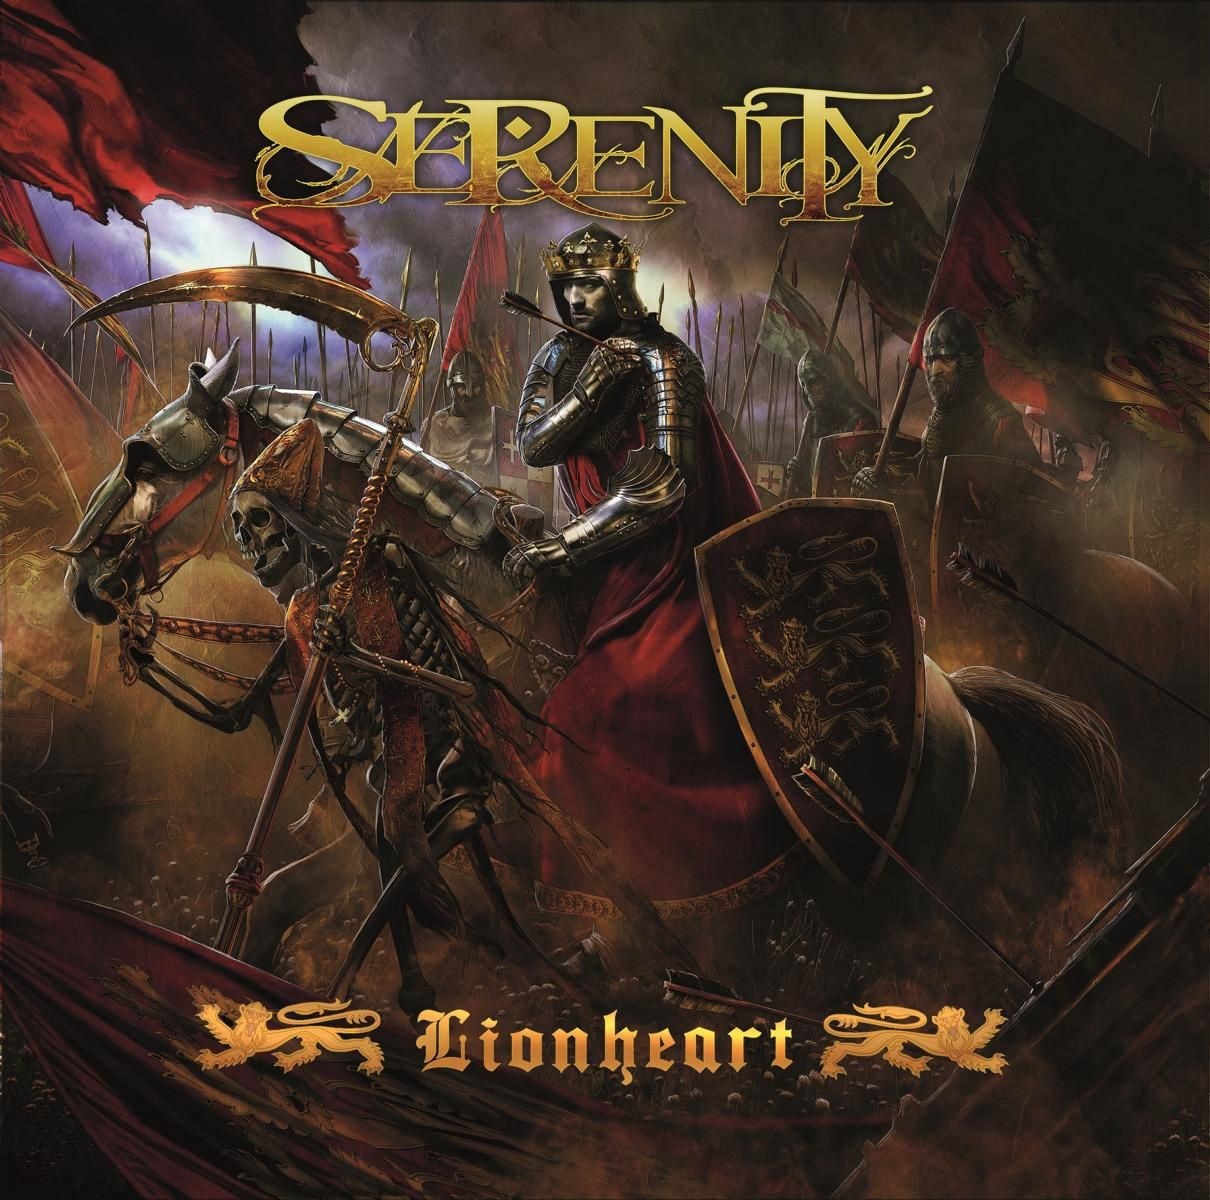 SERENITY unveil details about the upcoming album